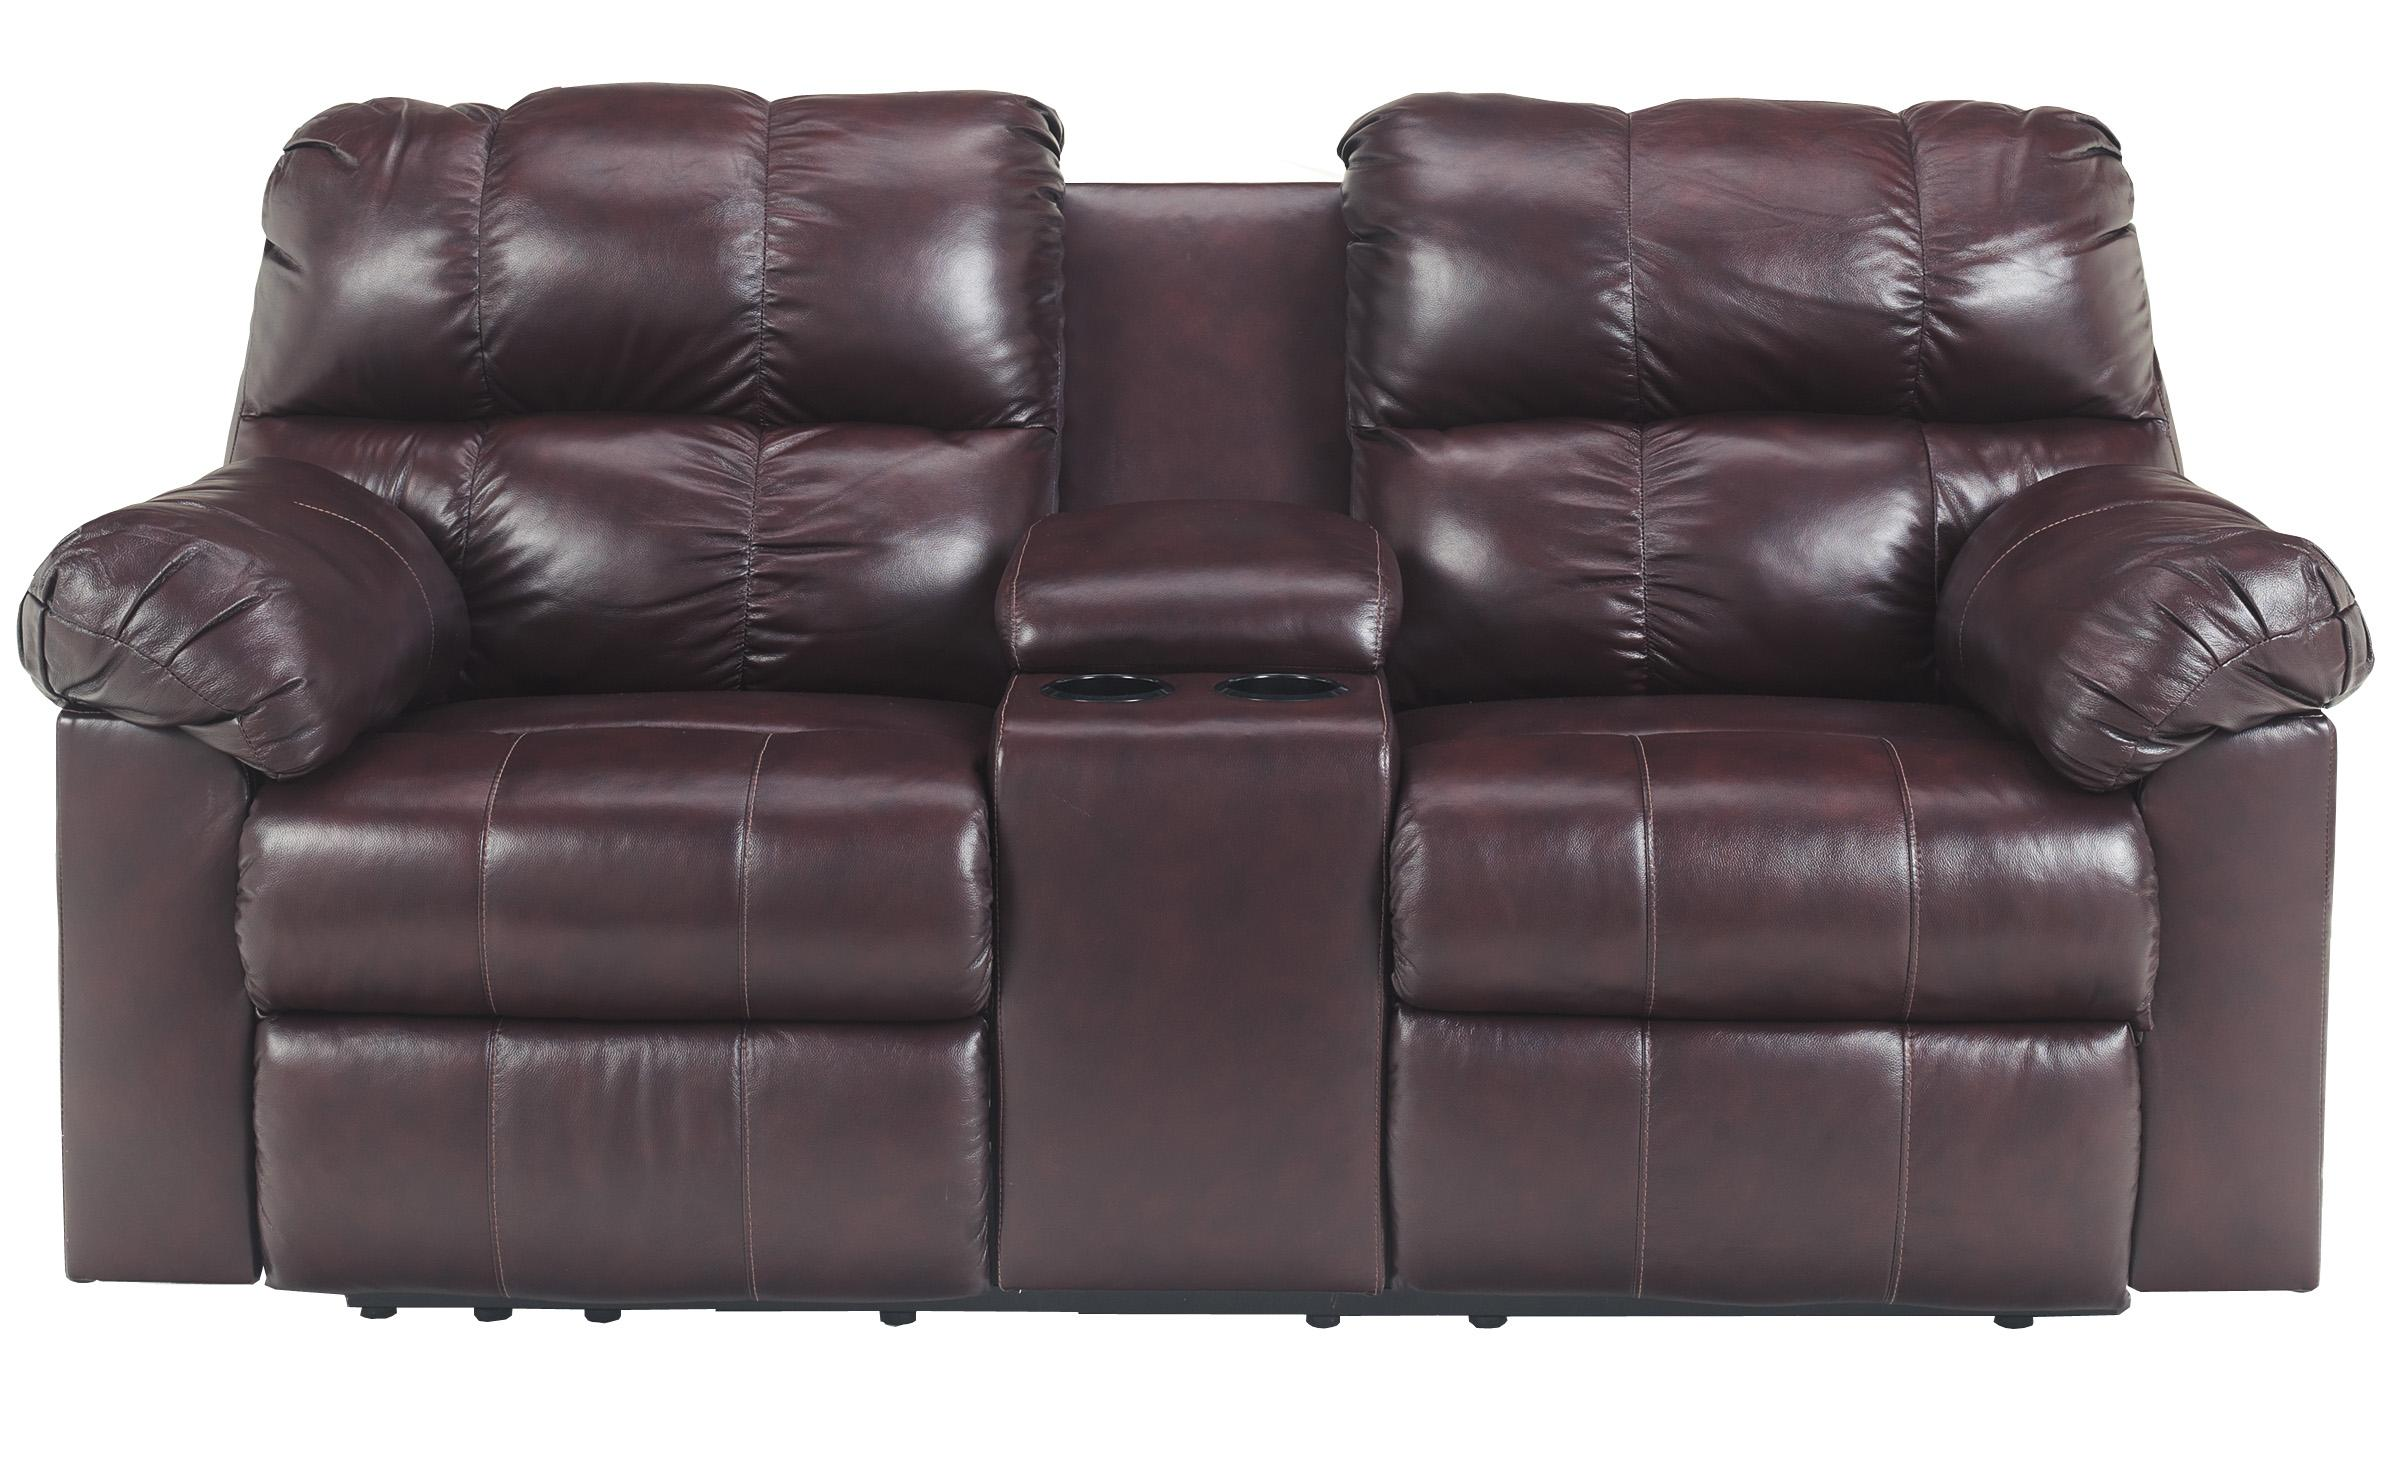 Signature Design by Ashley Kennard - Burgundy Dbl Rec Love Seat w/Console - Item Number: 2900094